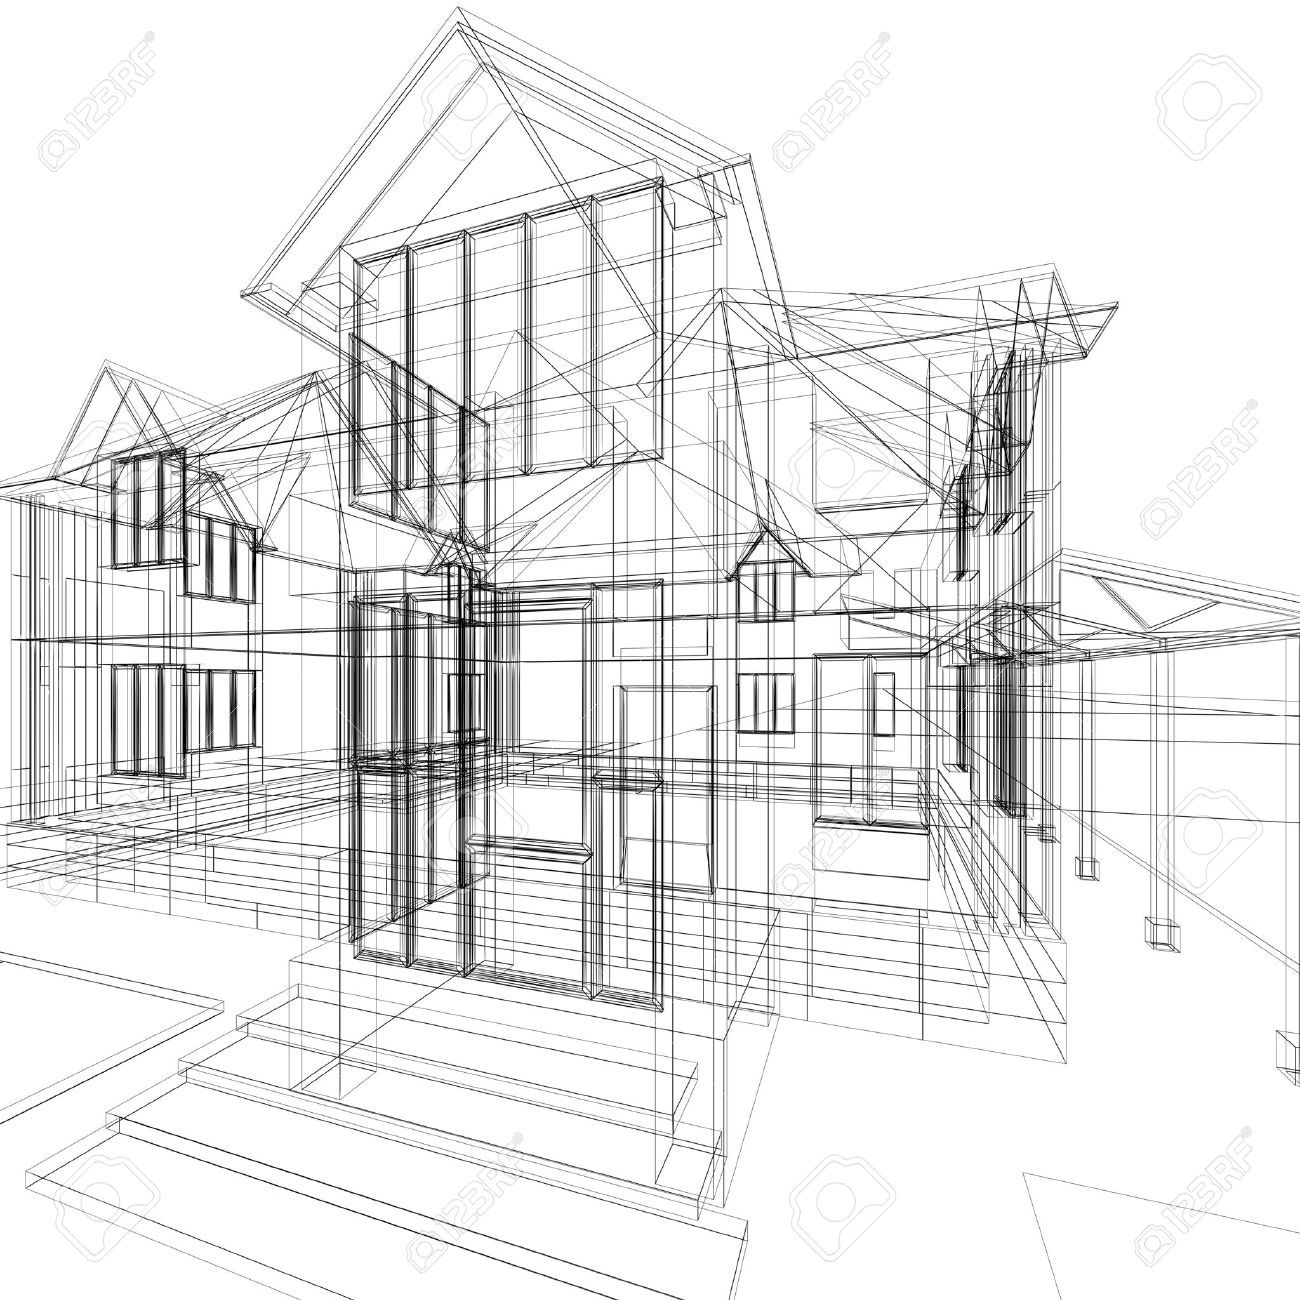 Abstract Sketch Of House 3d Architecture Illustration Stock Illustration 9919555